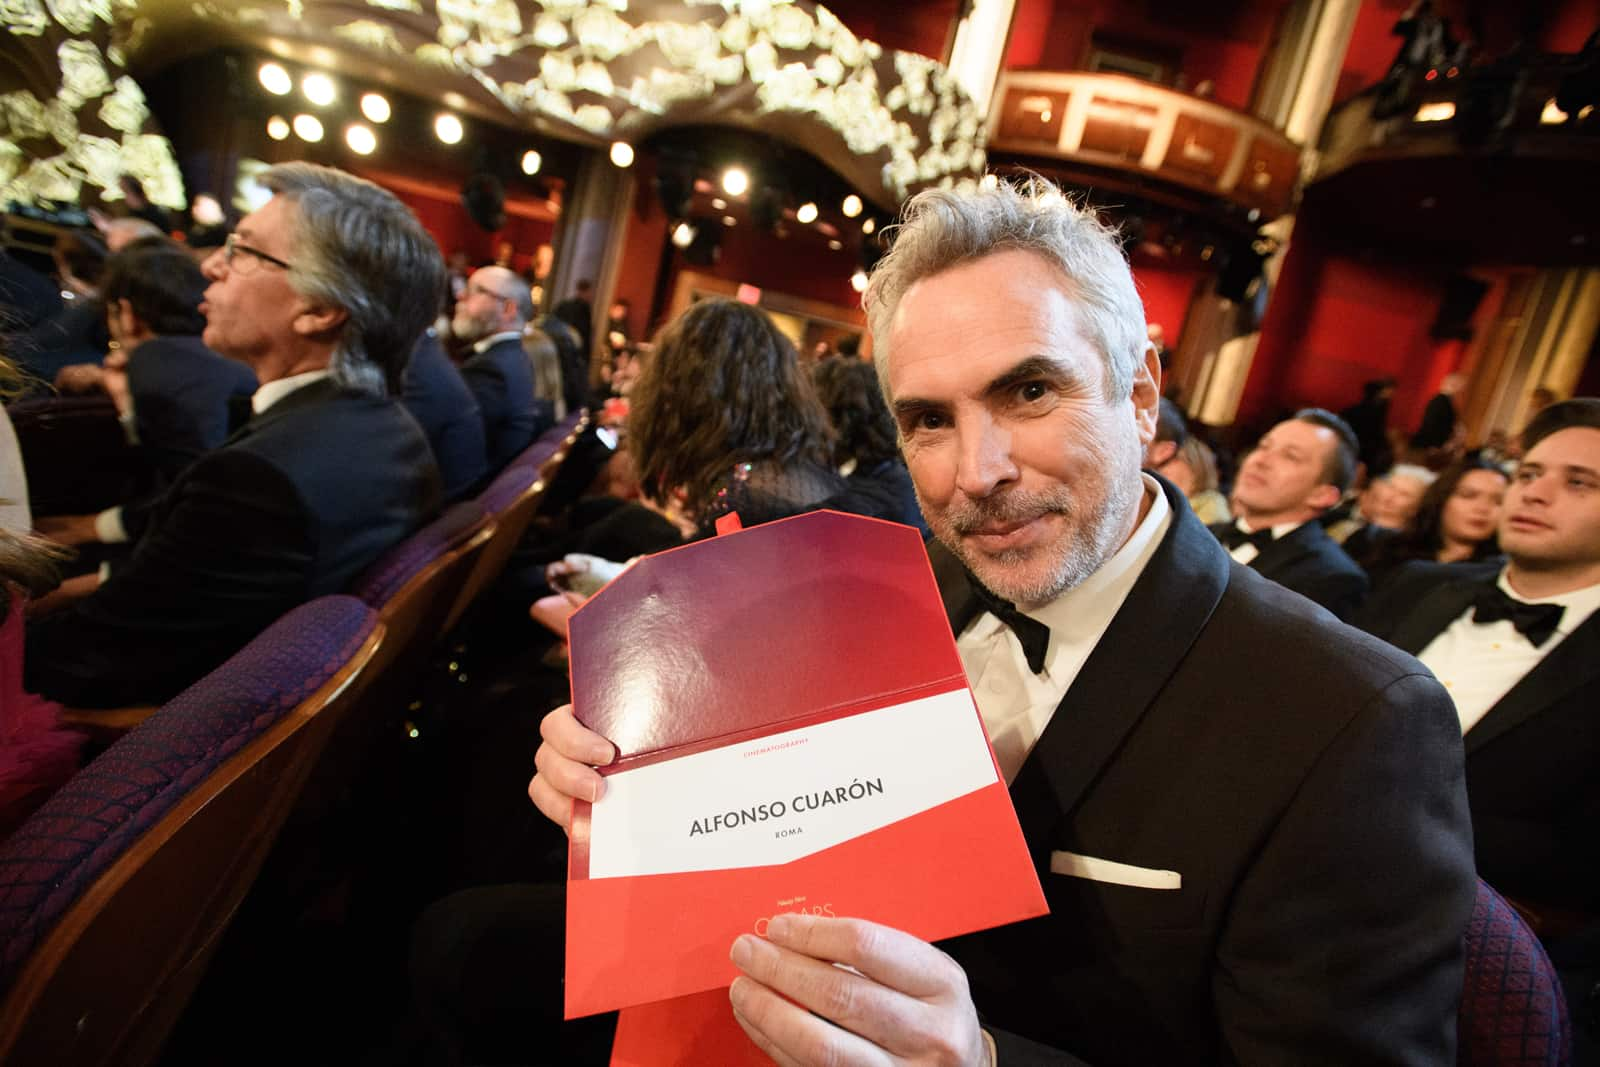 Alfonso Cuarón poses with the winning envelope for achievement in cinematography. Image: Richard Harbaugh / ©A.M.P.A.S.